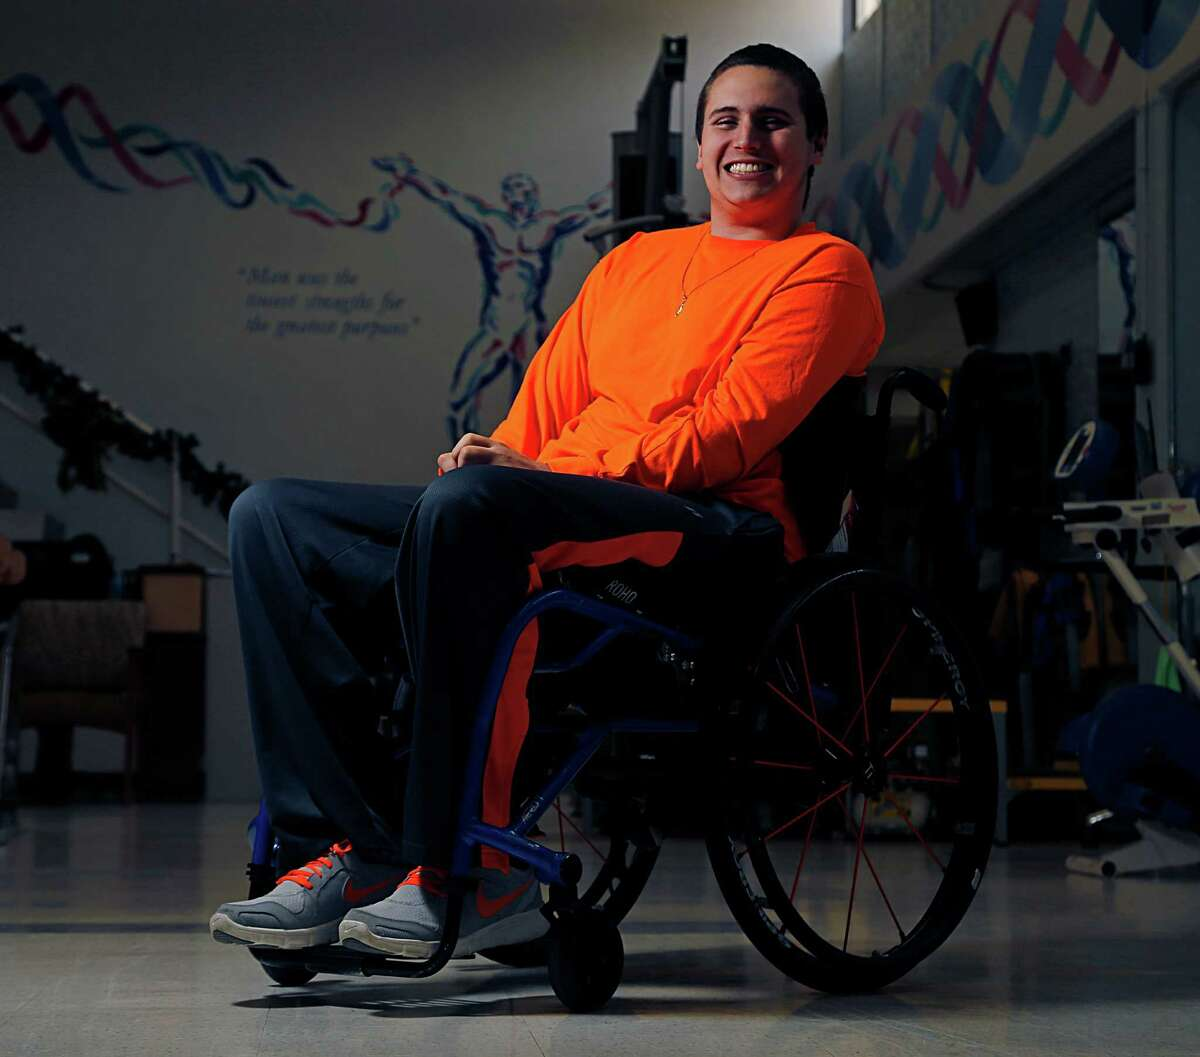 Louis Tontodonato, 20, who broke his neck in a car accident a year ago poses for a portrait at TIRR Memorial Hermann after test Wednesday, Dec. 16, 2015, in Houston.